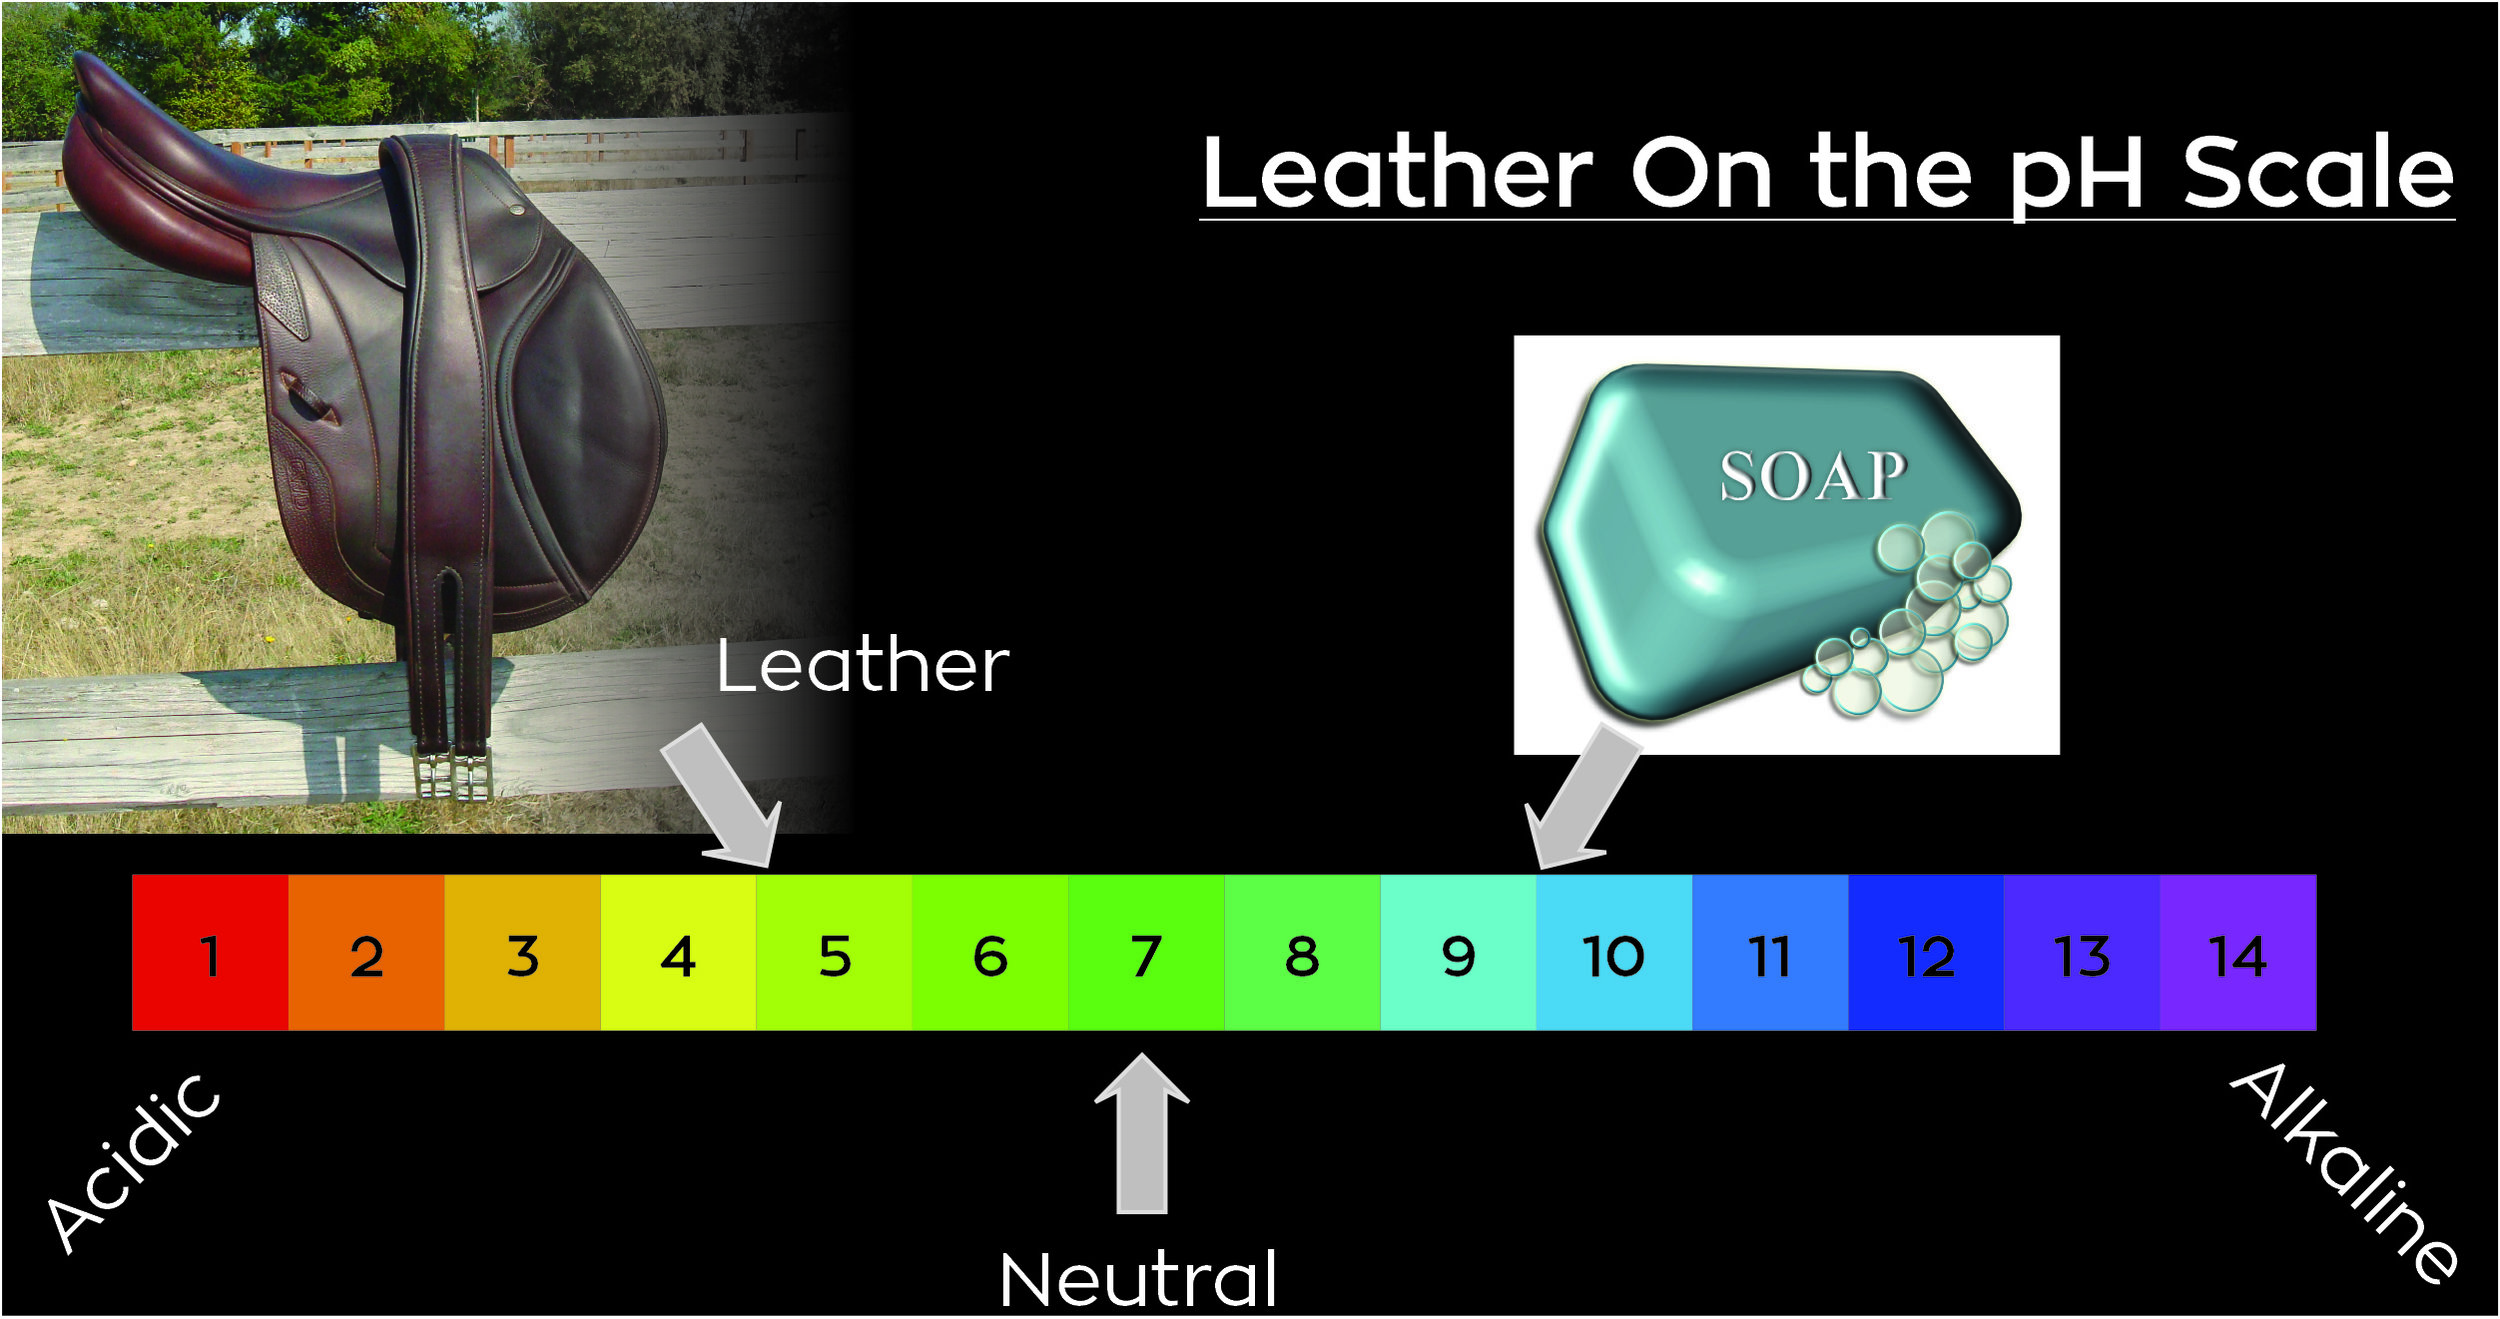 Leather on the pH Scale